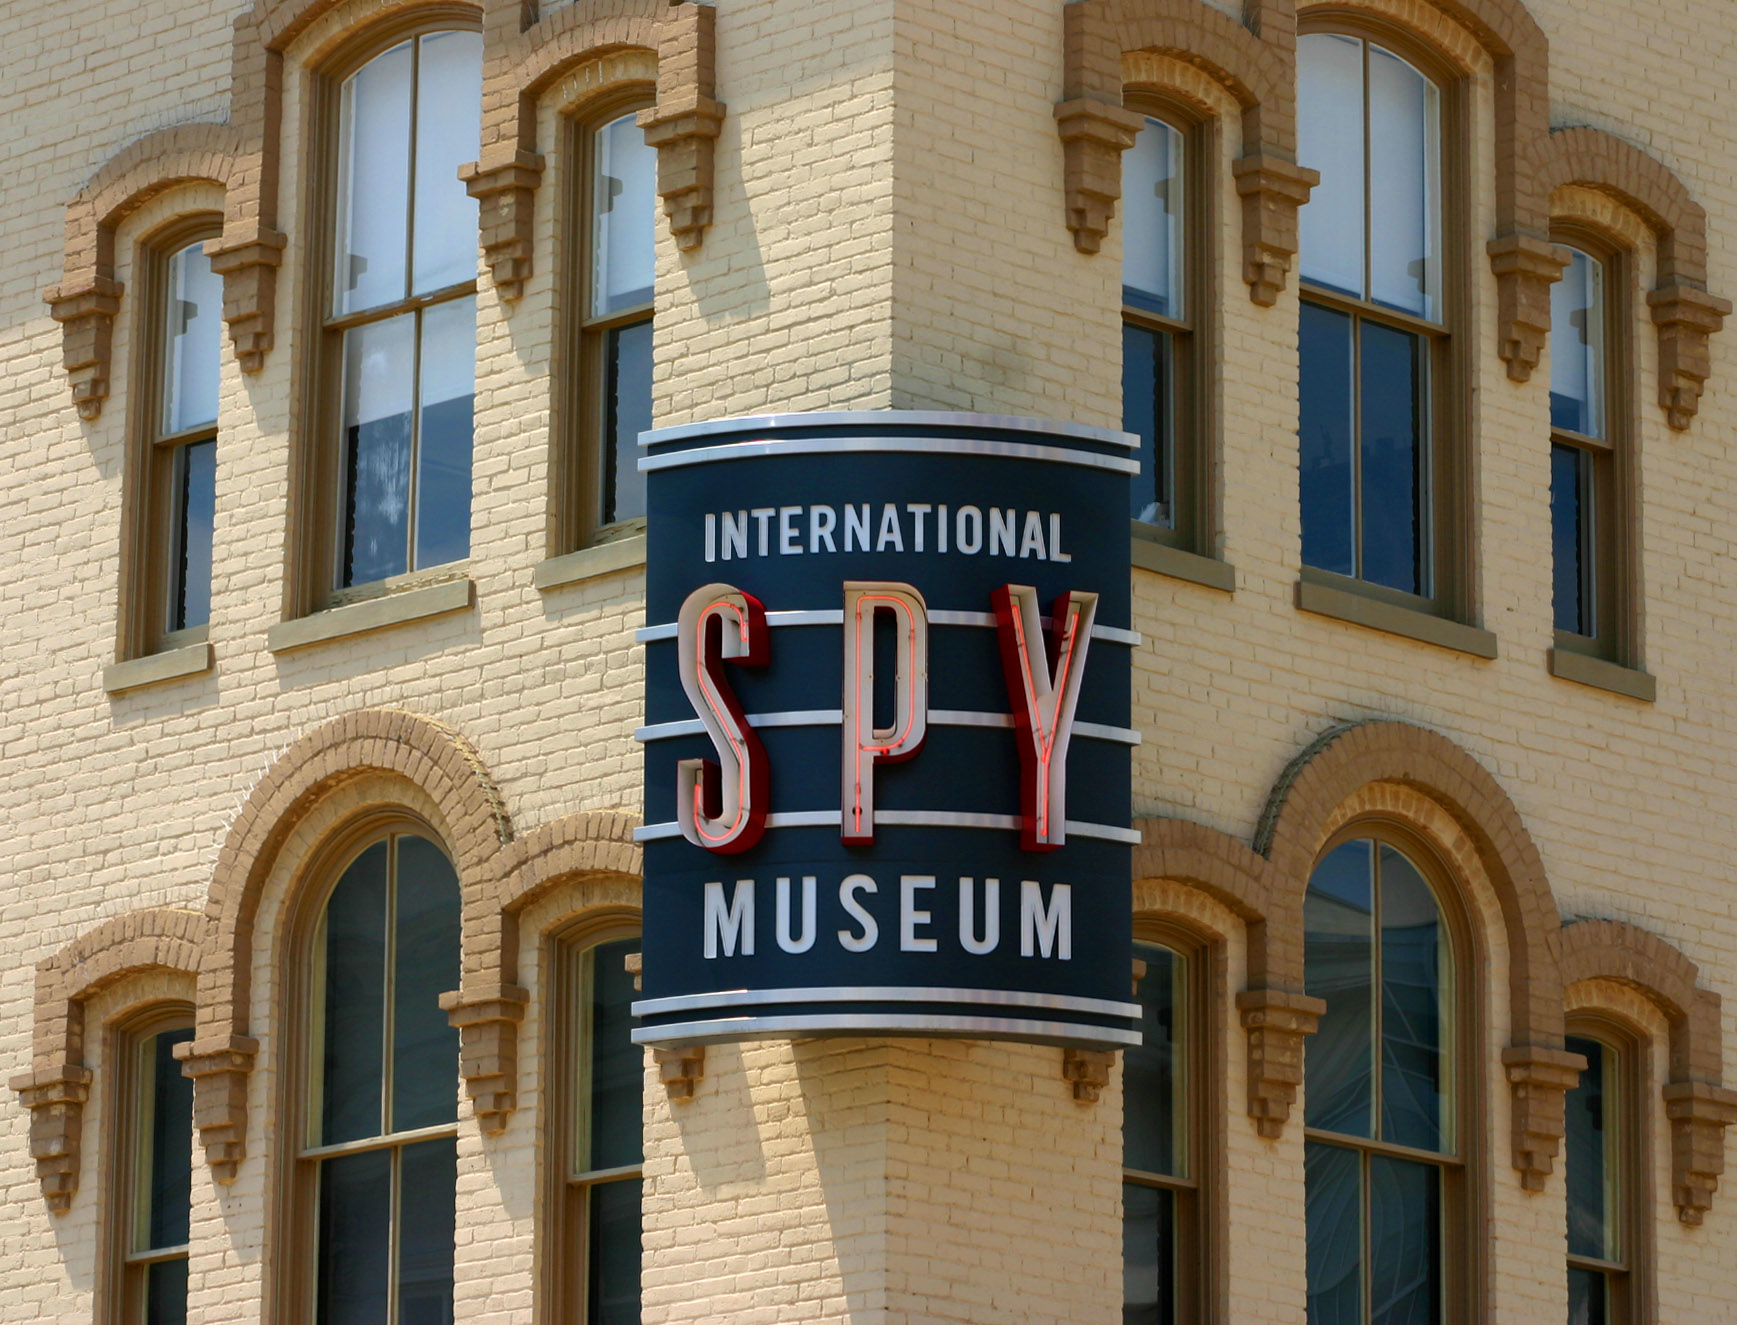 International Spy Museum Building